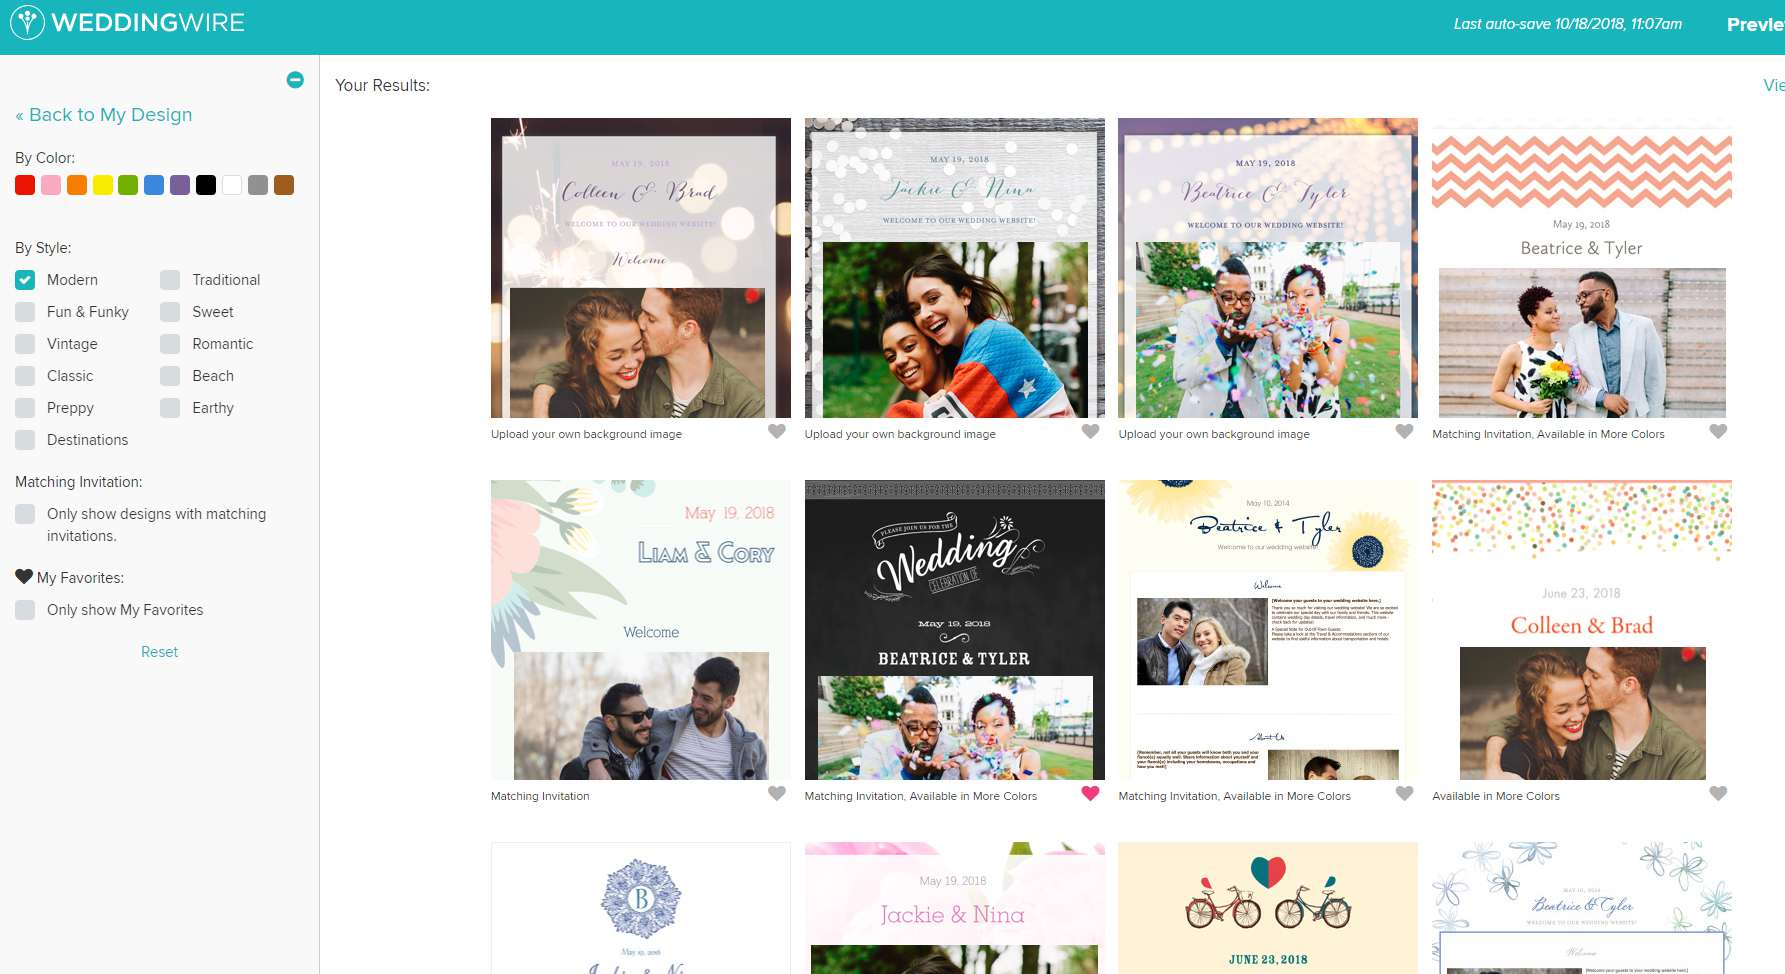 A selection of website themes available on Wedding Wire